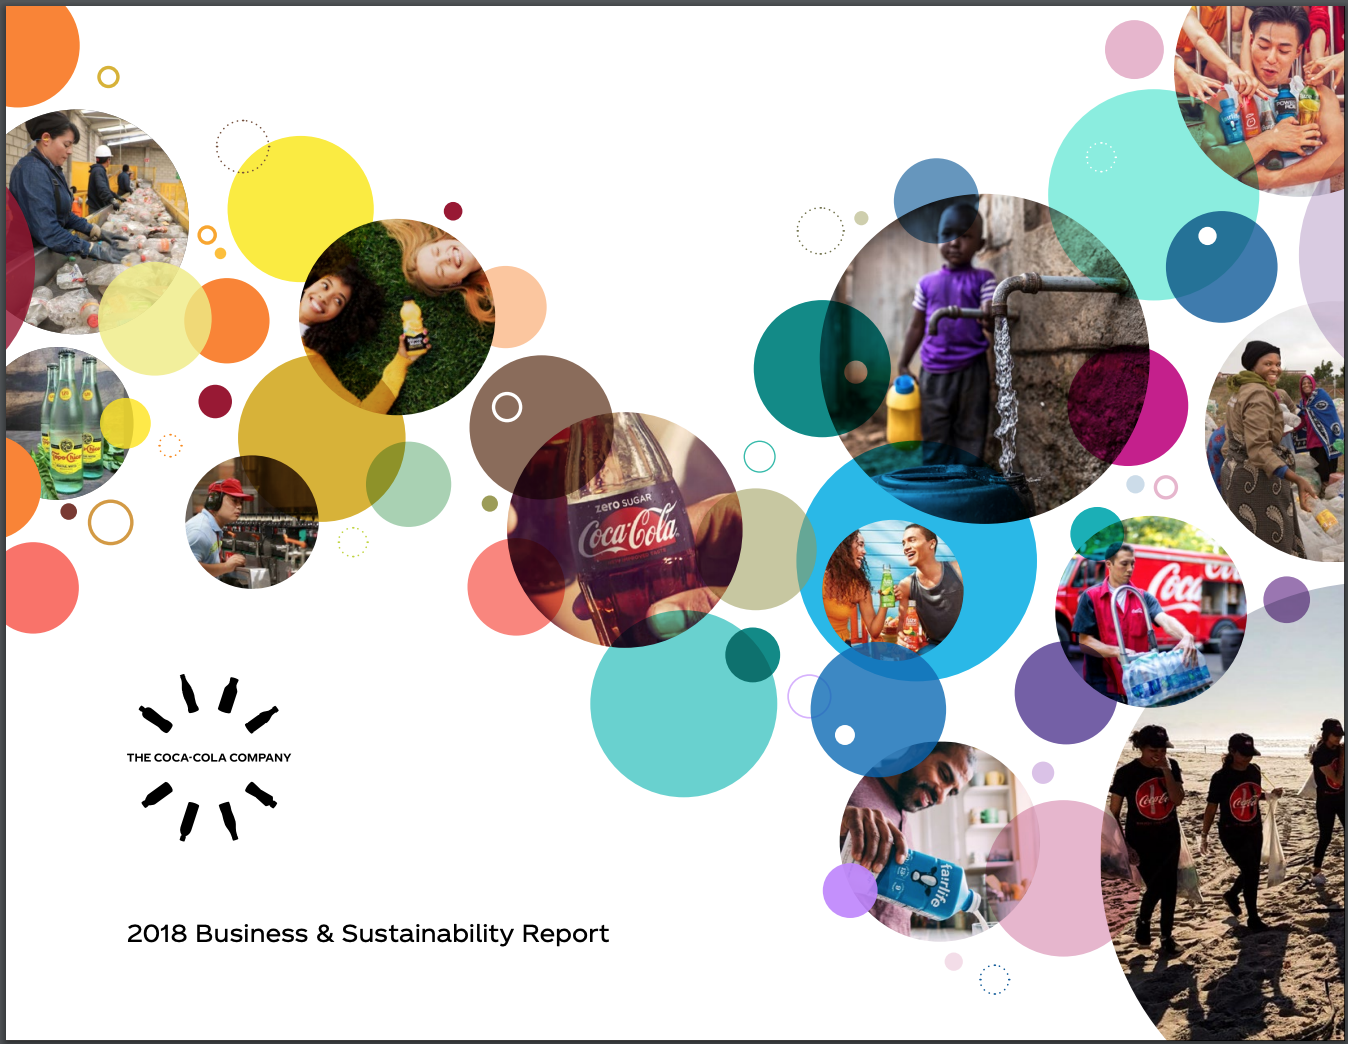 Coca-Cola's 2018 Business and Sustainability Report